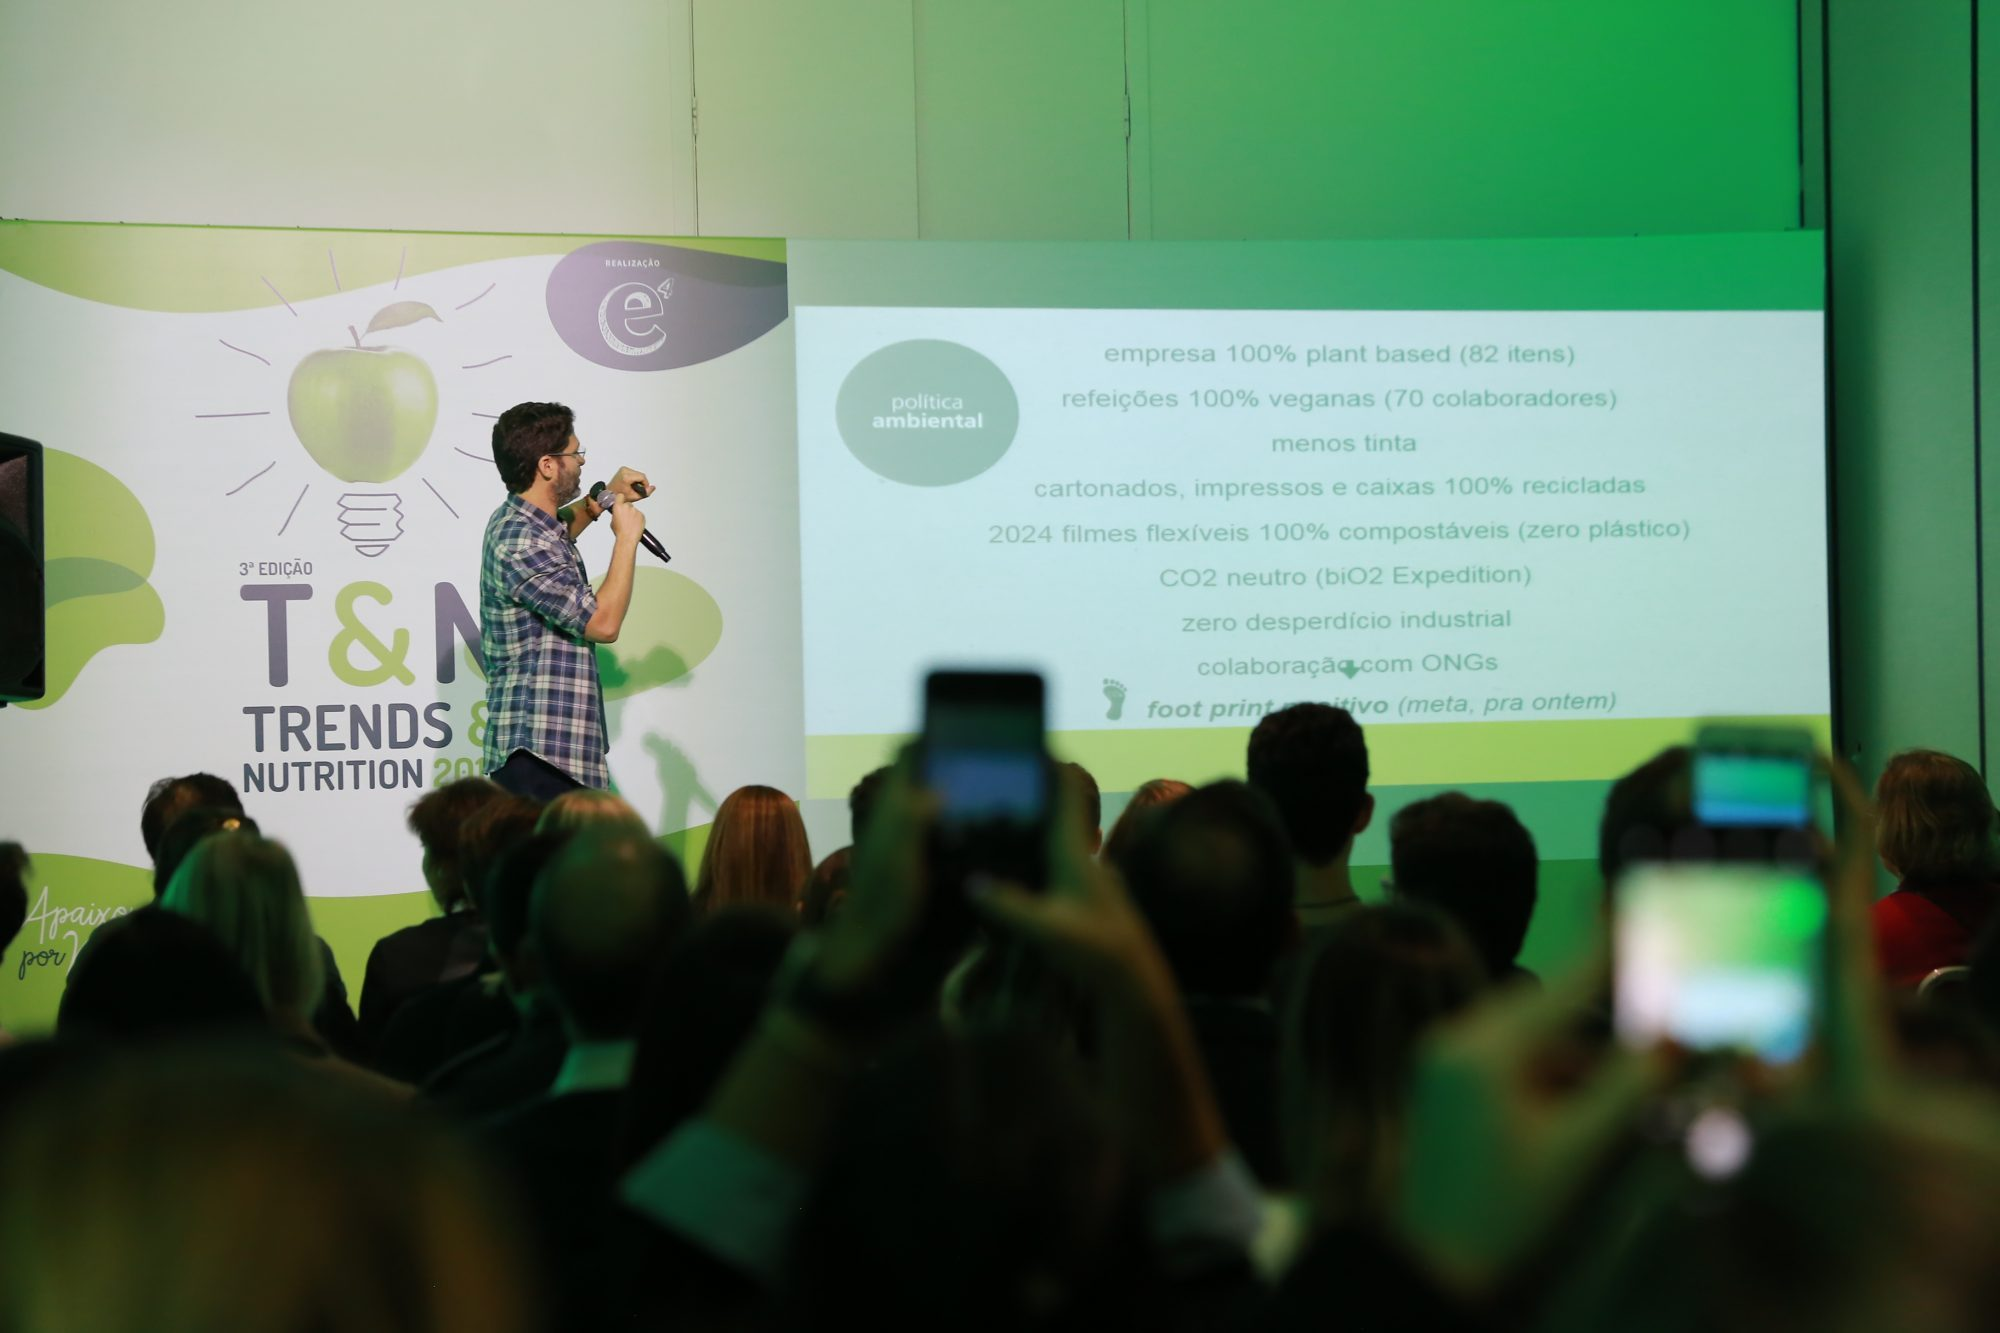 Trends & Nutrition do GF2019 recebe o fundador da Bio2 organic